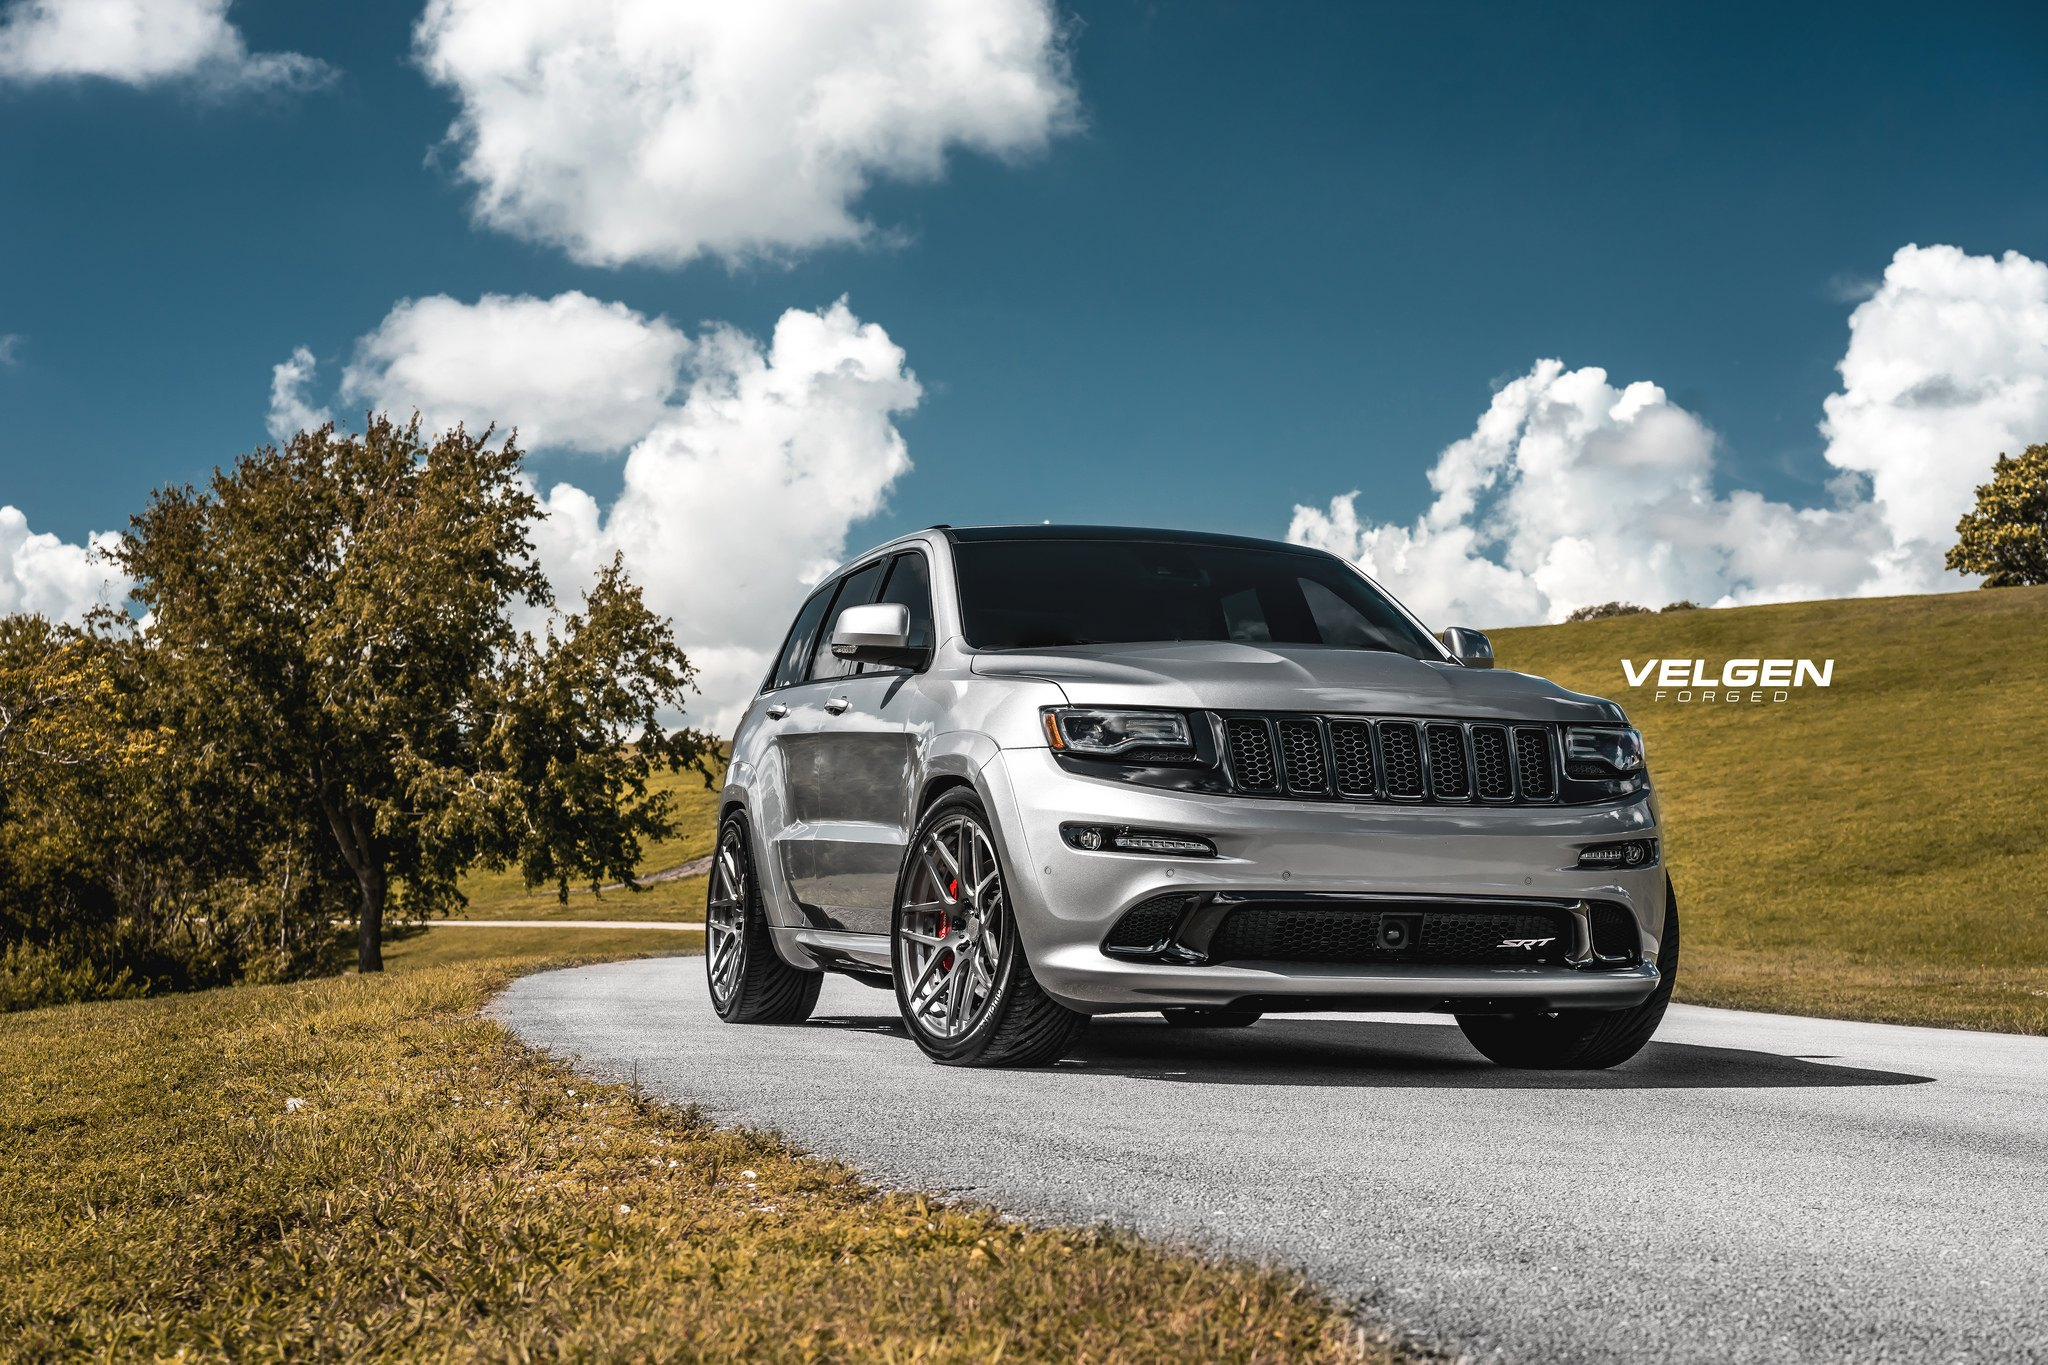 Jeep Srt 8 2017 >> Unmatched Style: Jeep Grand Cherokee SRT Fitted With VELGEN Custom Wheels — CARiD.com Gallery